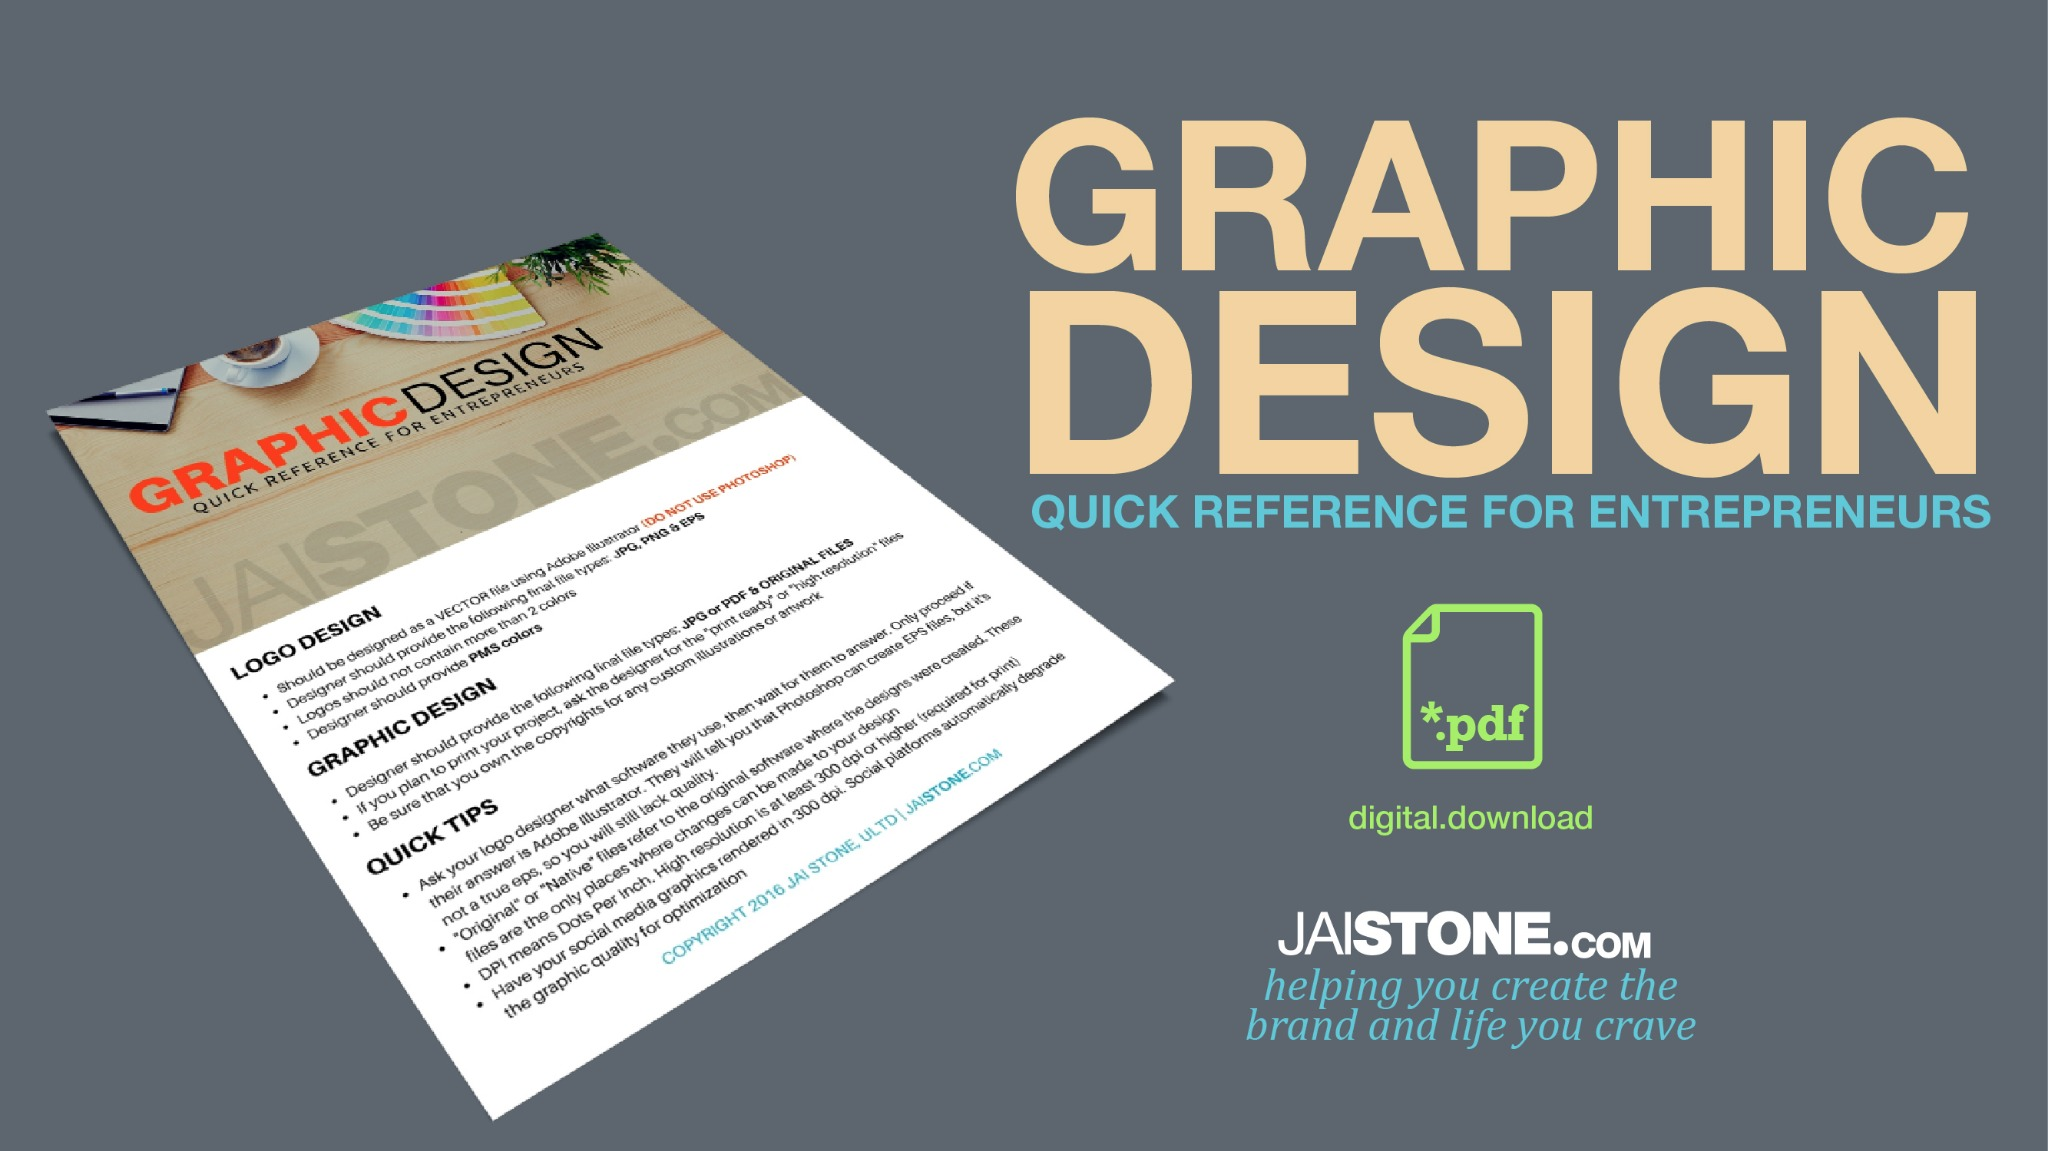 Graphic Designer Quick Reference Guide For Entrepreneurs